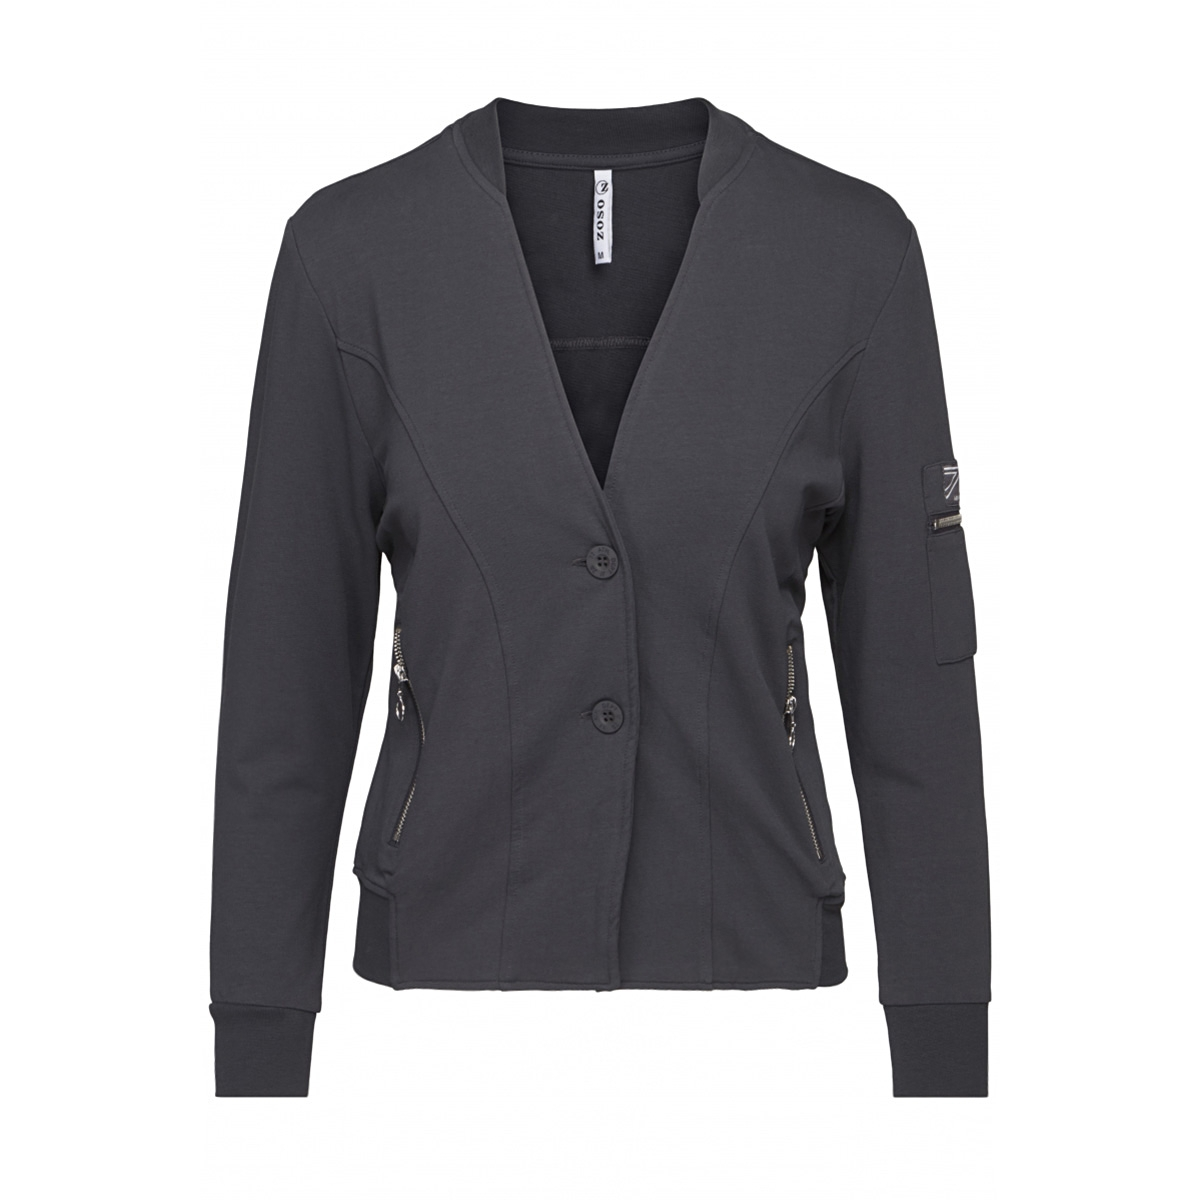 mercy jacket with details 201 zoso blazer 0059 charcoal